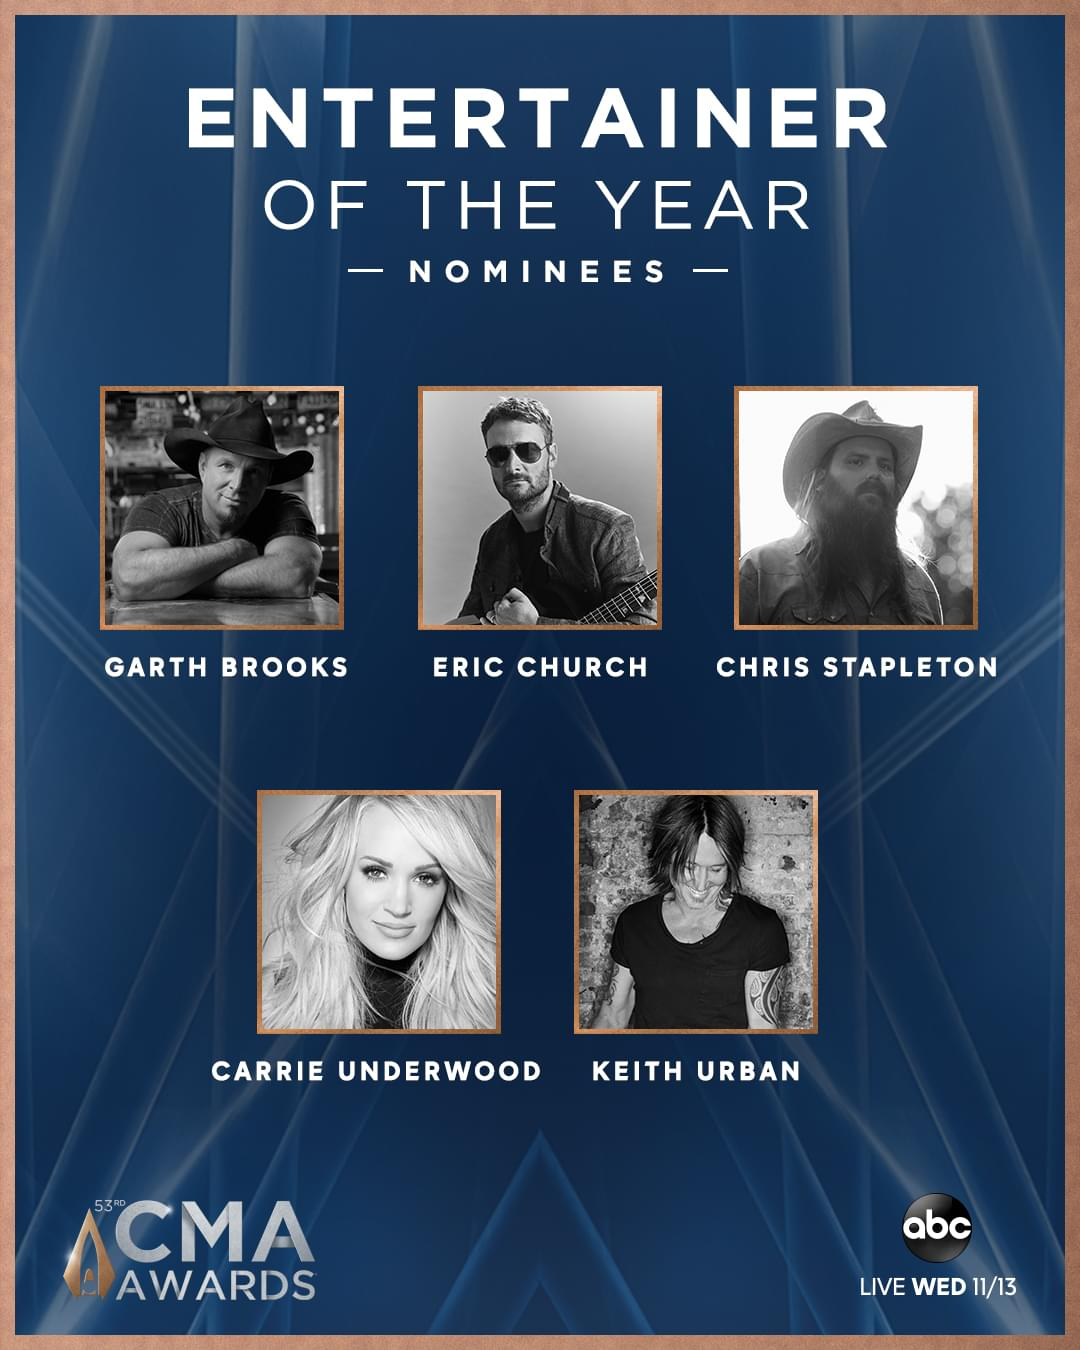 CMA-AWARDS_2019_ENTERTAINER_TEMPLATE_1080x1350_v4_082319